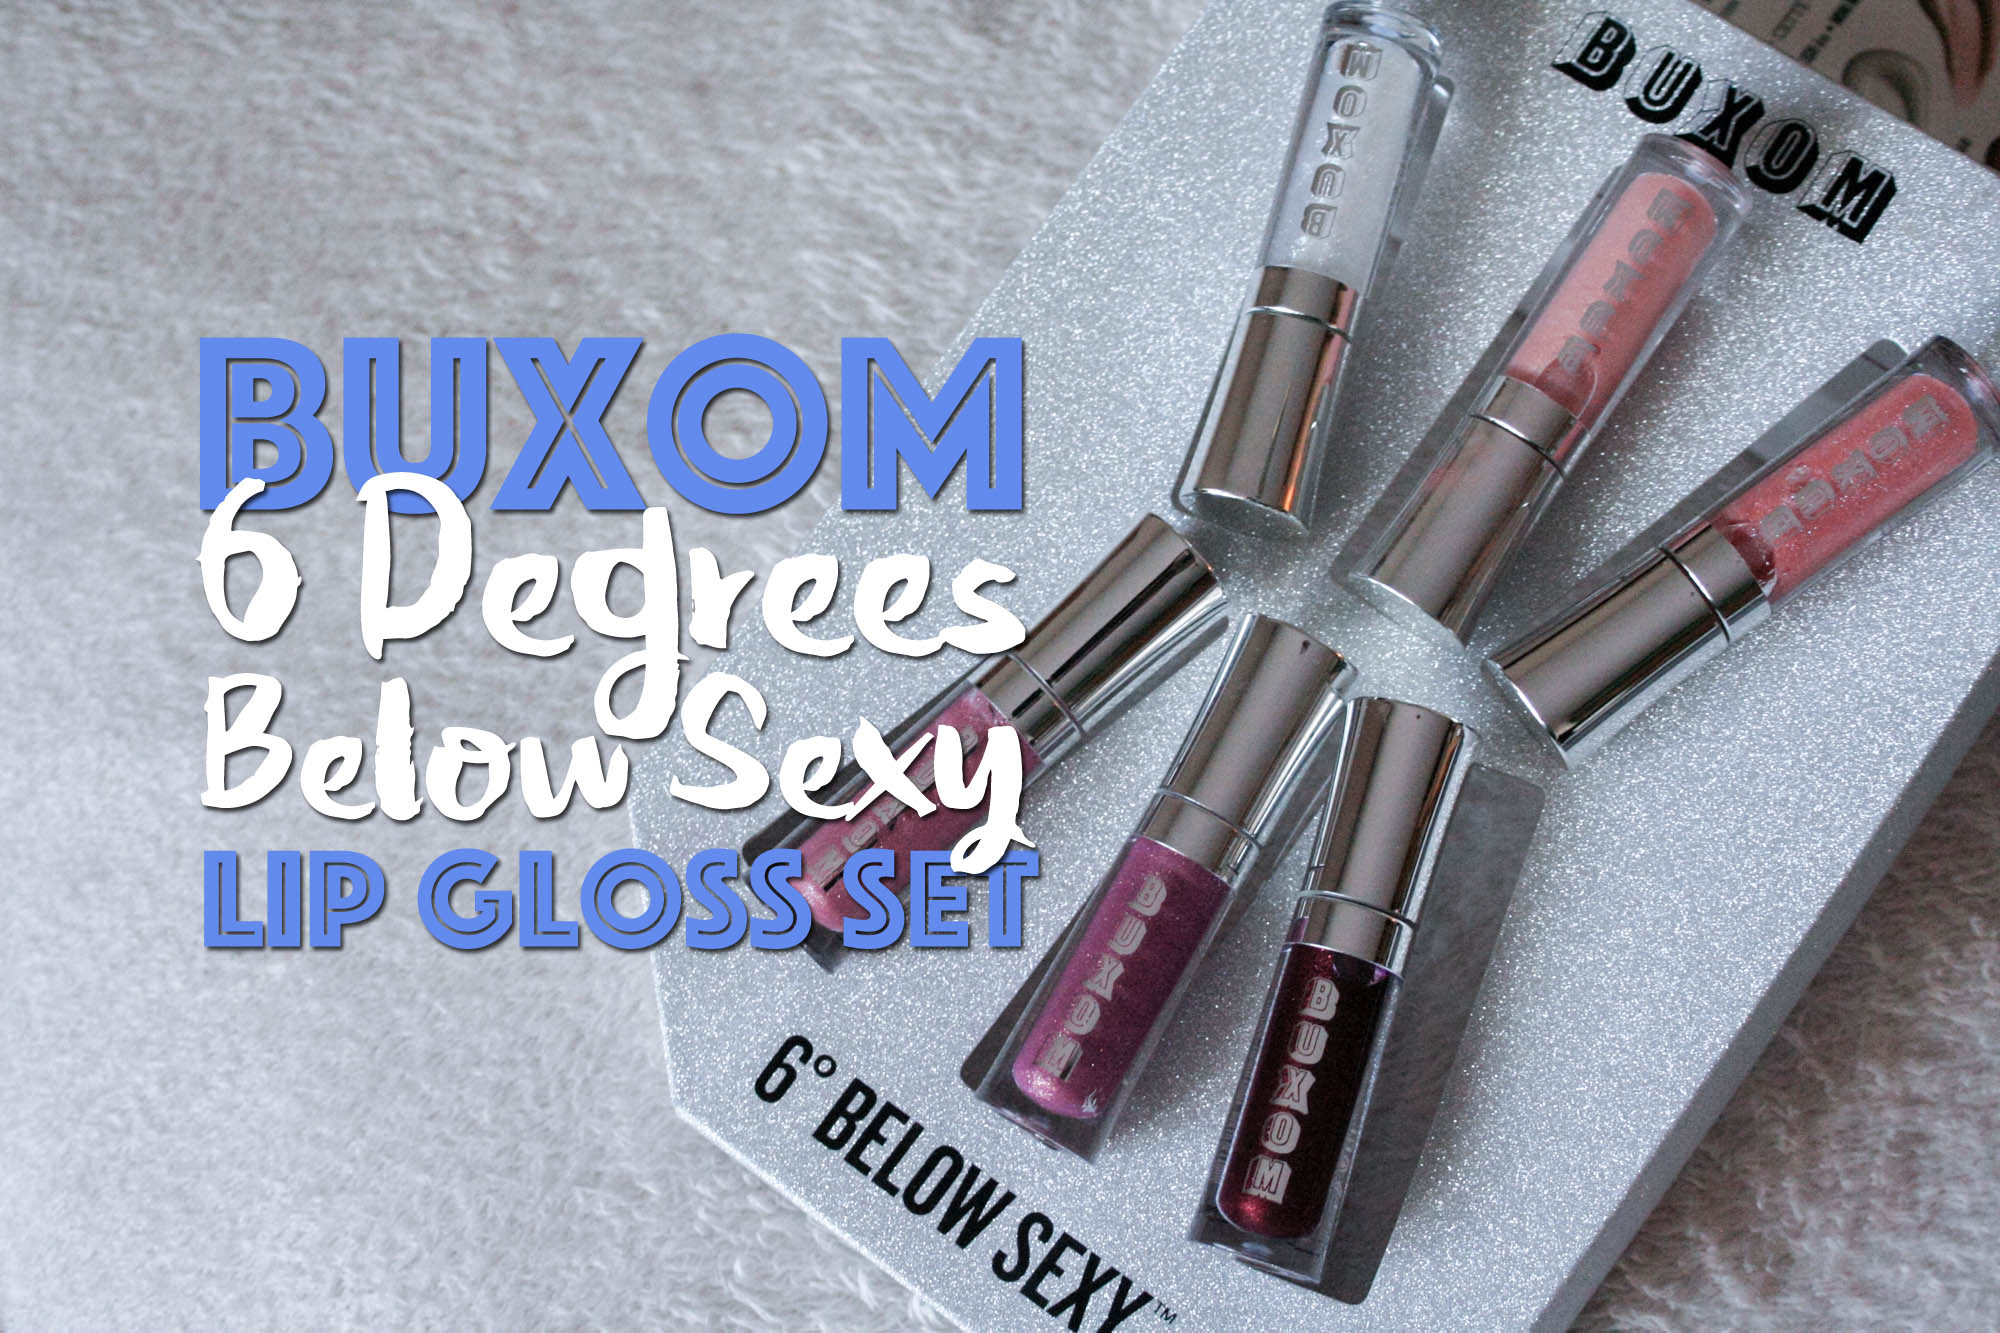 6 degrees below sexy mini full on lip polish collection